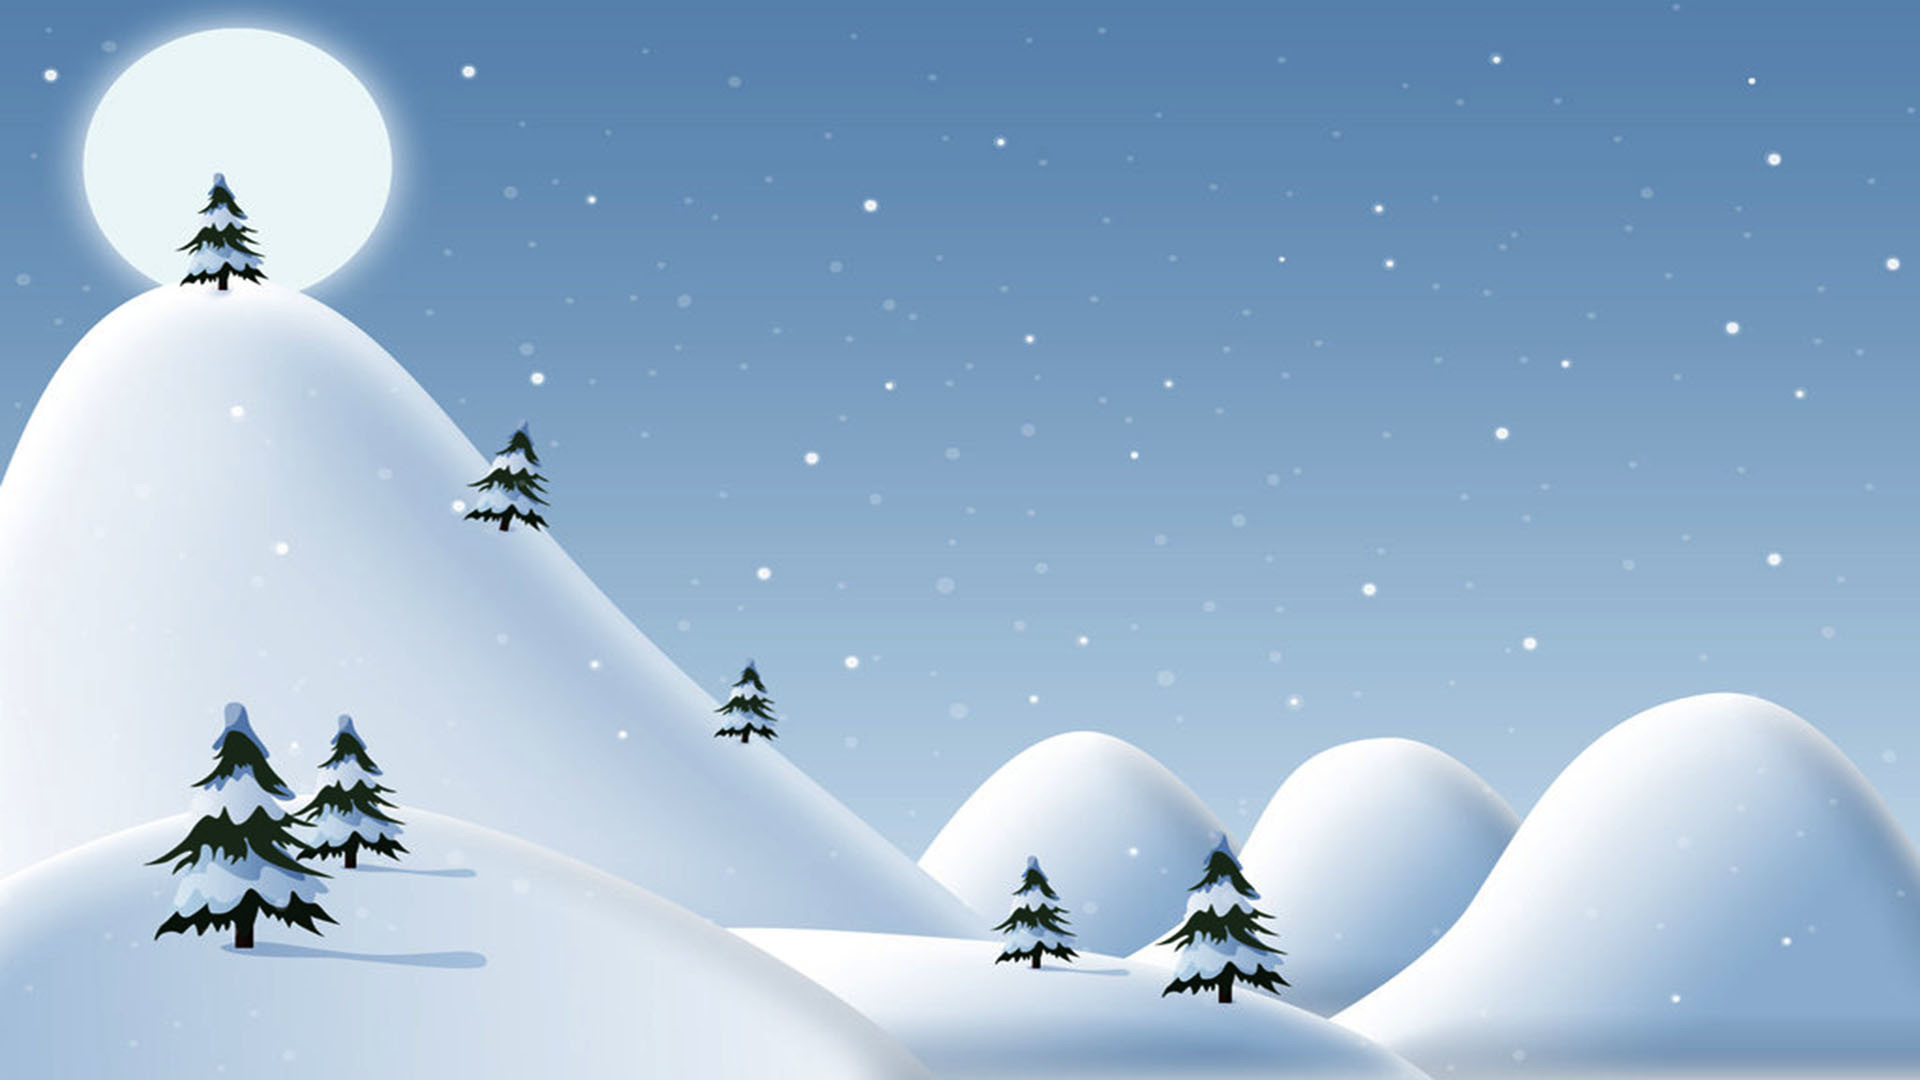 1920x1080 Xmas Background Wallpaper